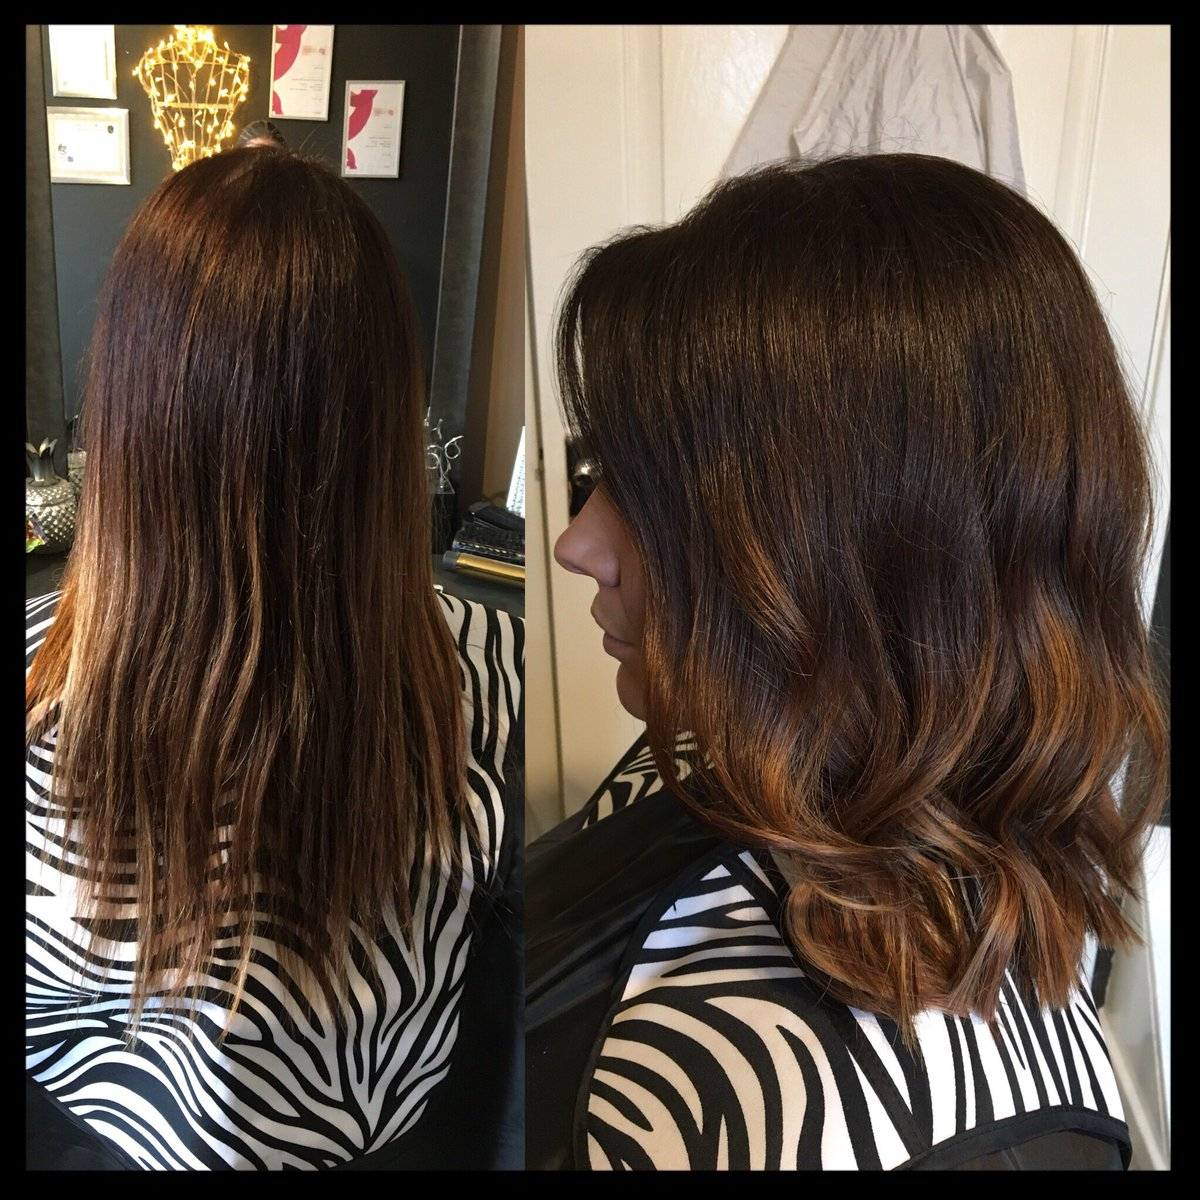 El Hair And Beauty On Twitter Hair Extensions Are Not Just To Give